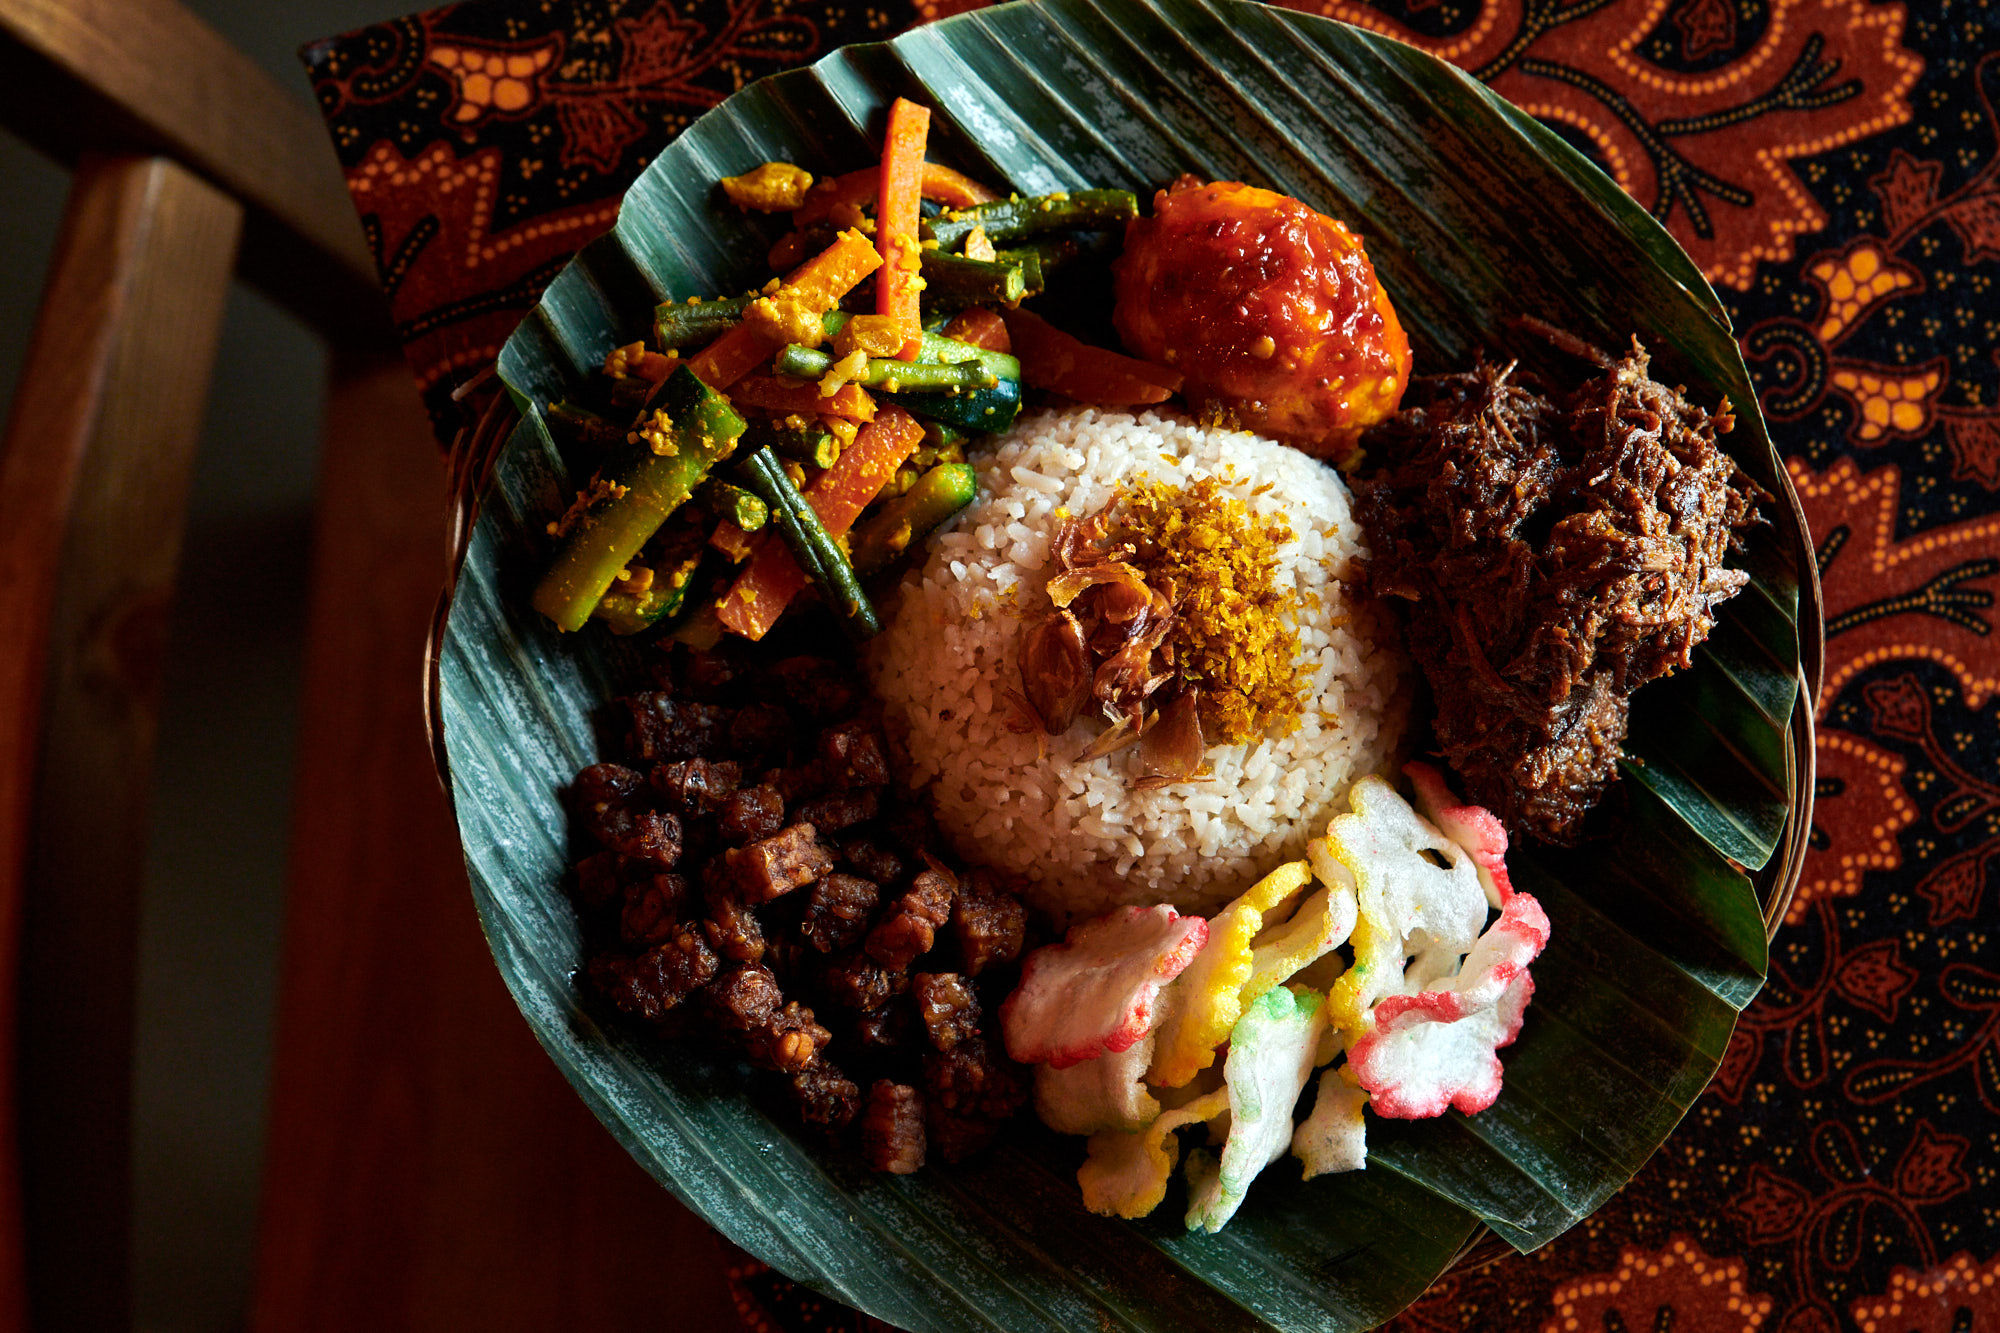 A mound of coconut rice sits in the middle of a banana leaf cut to fit a plate. Small mounds of various pickles, stews, and snacks circle the rice, including a pickle of carrots and beans, a fried hard boiled egg in a spicy sambal, stewed beef rendang, little brown hunks of fried tempeh, and krupuk, colorful Indonesian crackers